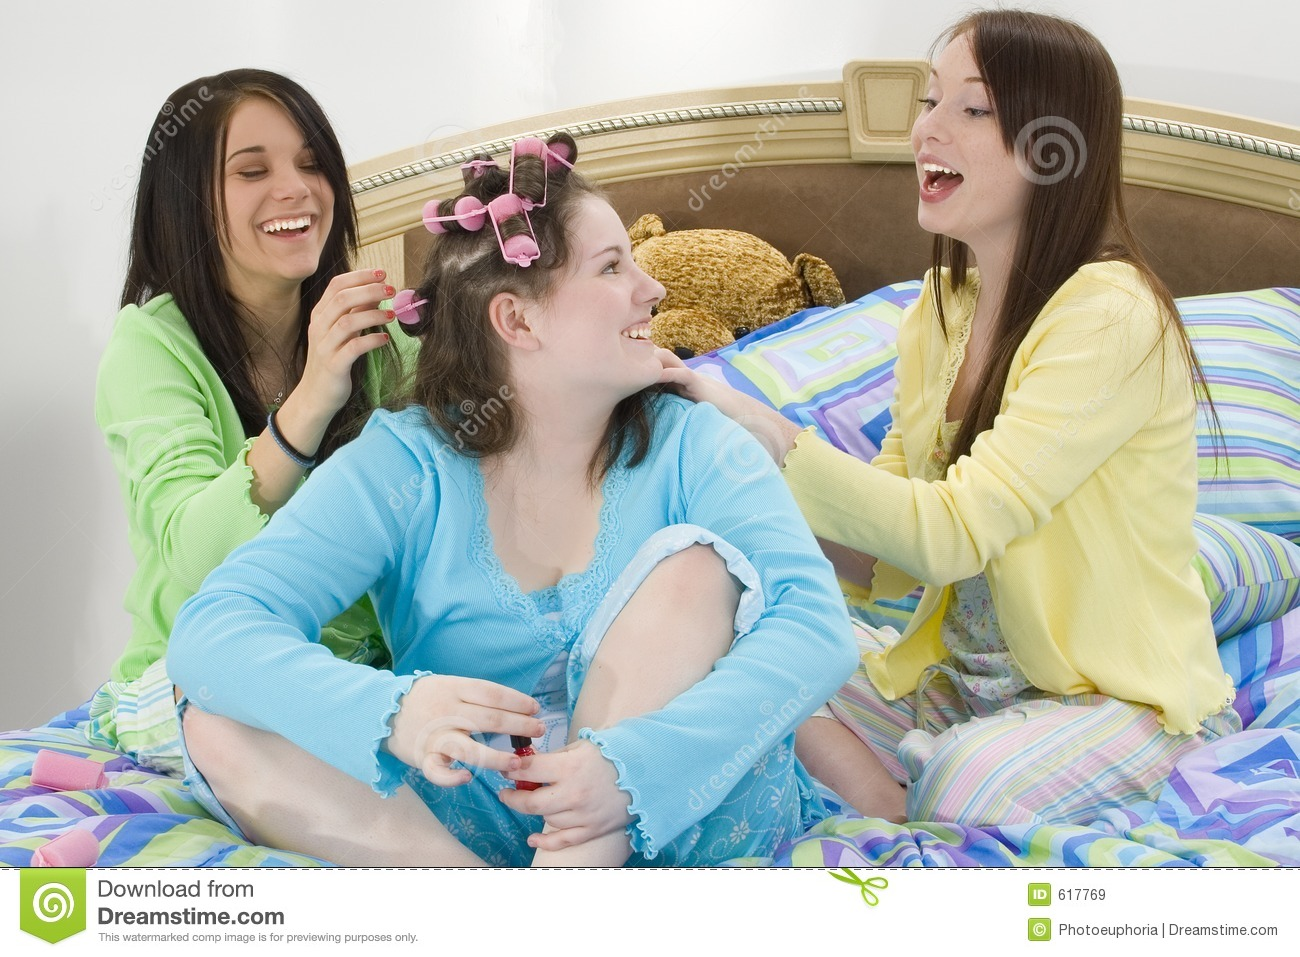 3 Ways to Plan a Girls Slumber Party - wikiHow